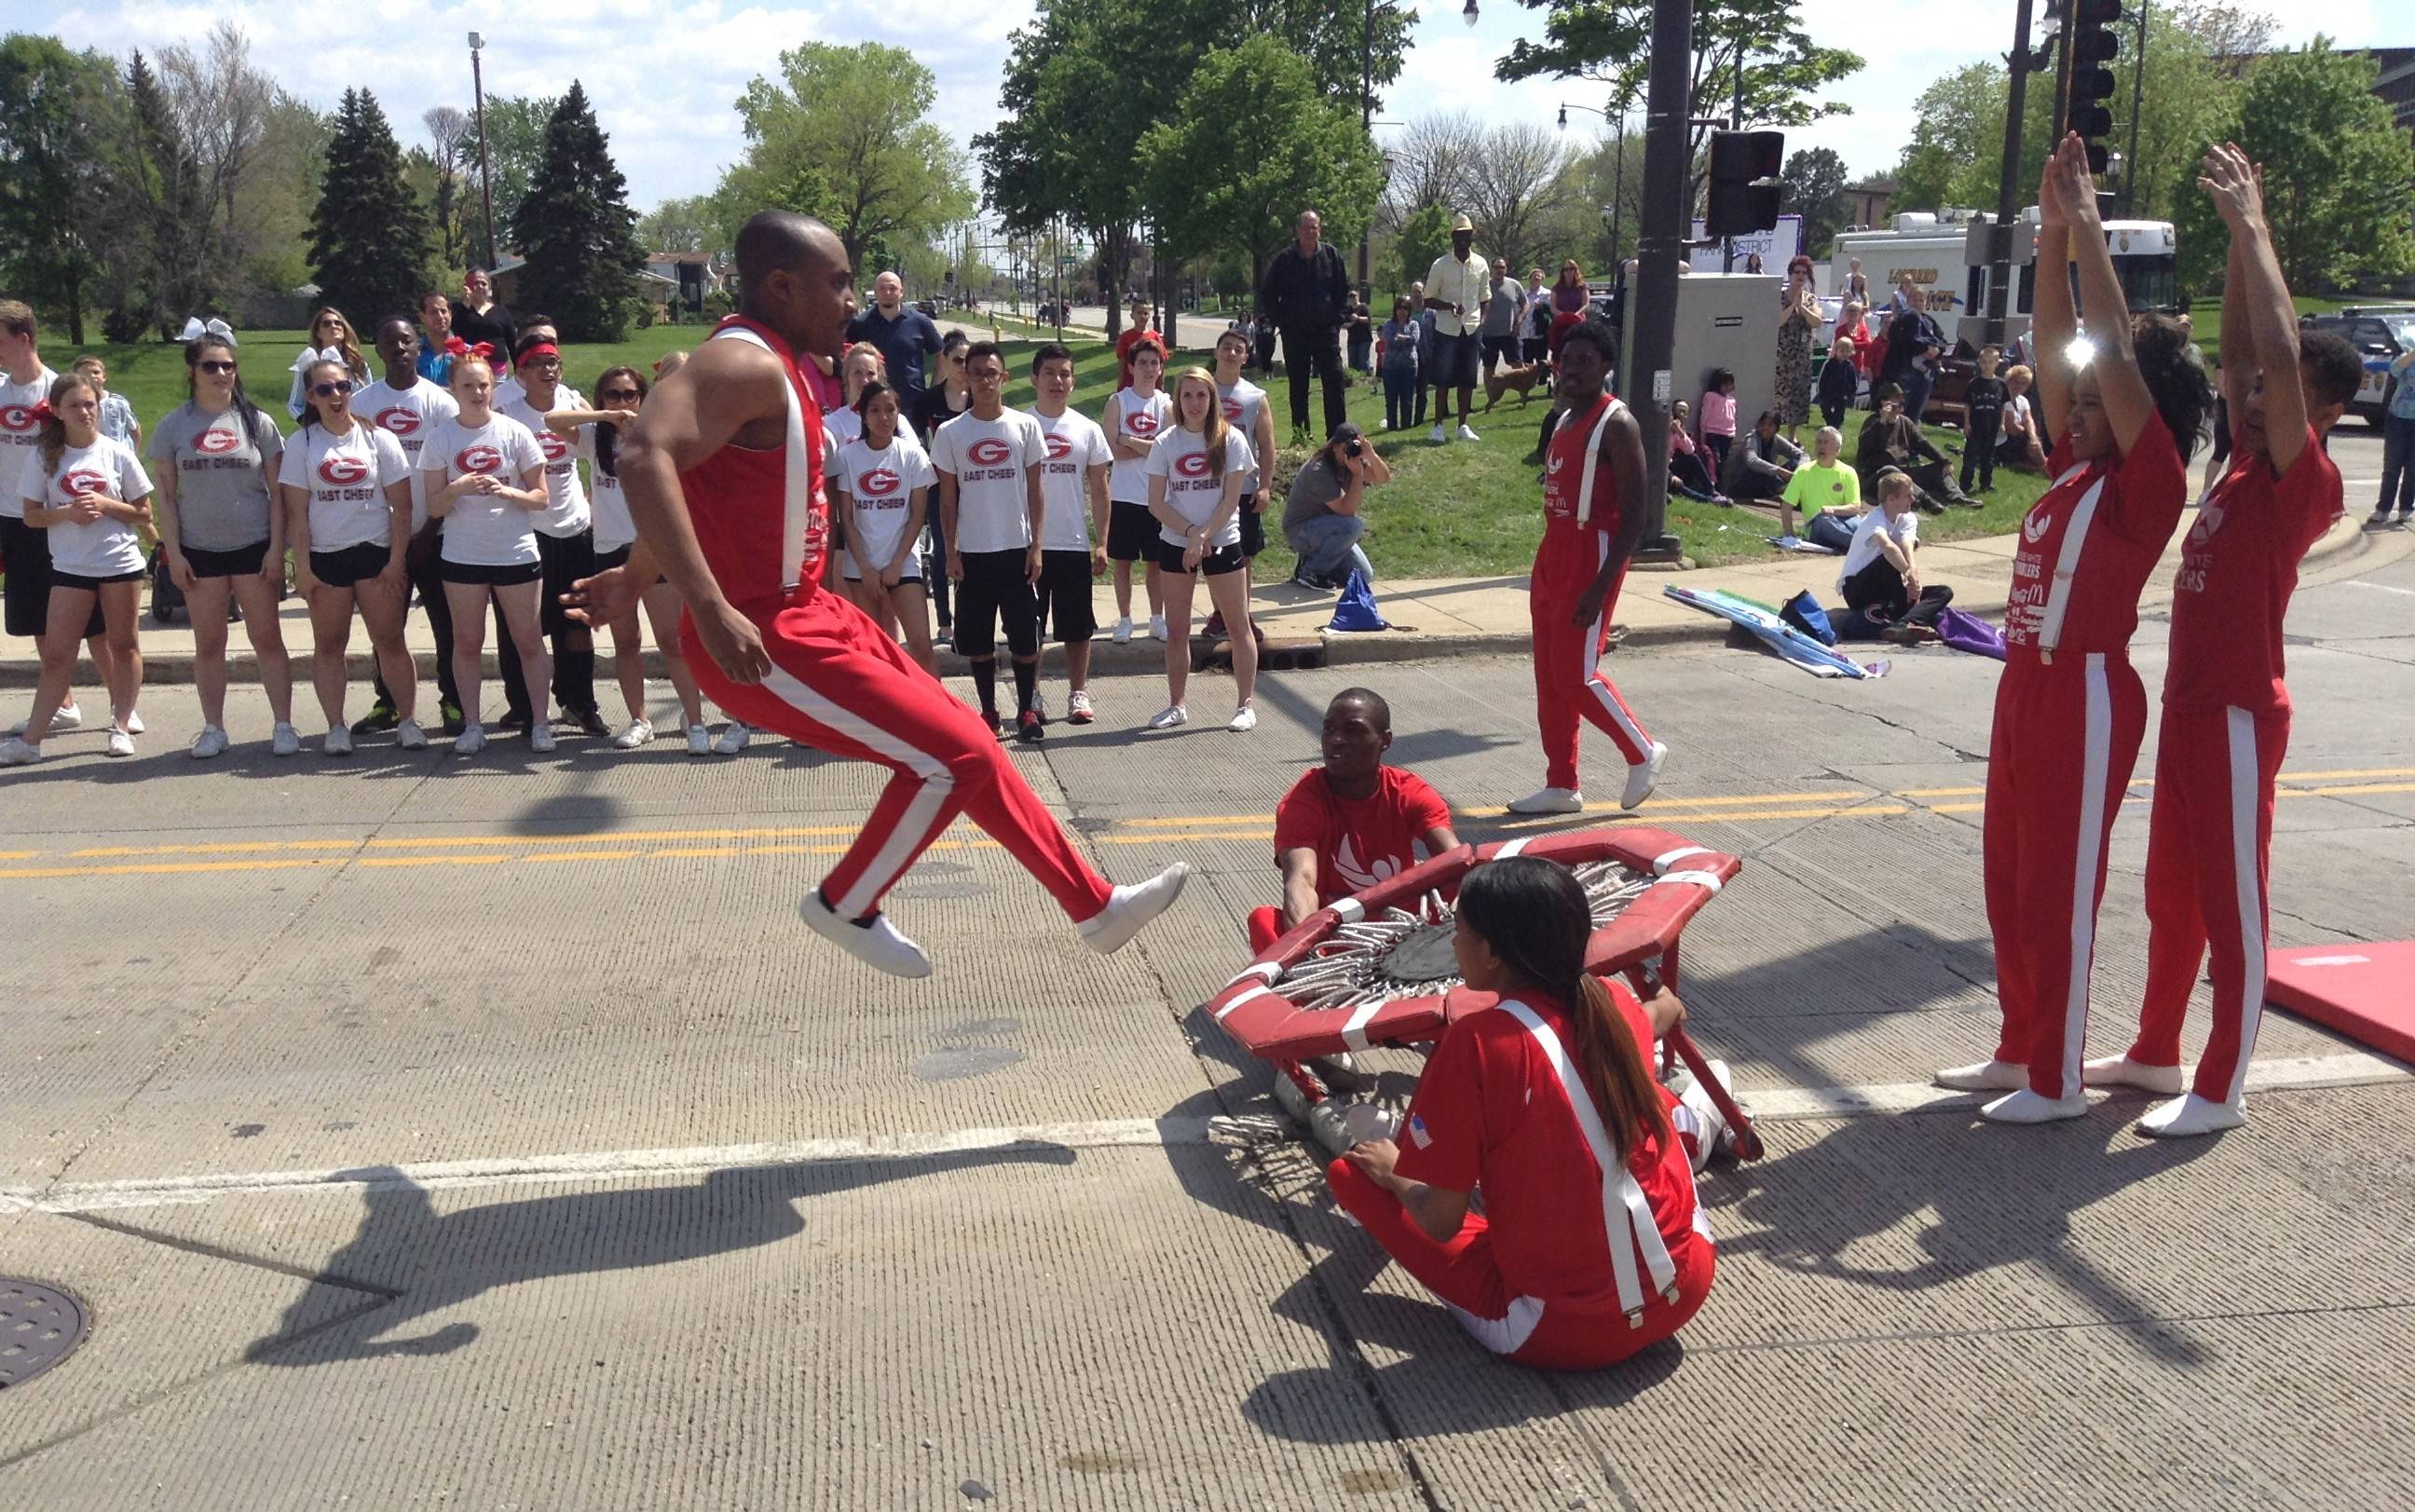 The Jesse White Tumblers wowed the crowd Sunday even as they warmed up before marching in the Lilac Parade. More than 100 entries took part in the parade down Lombard's Main Street.